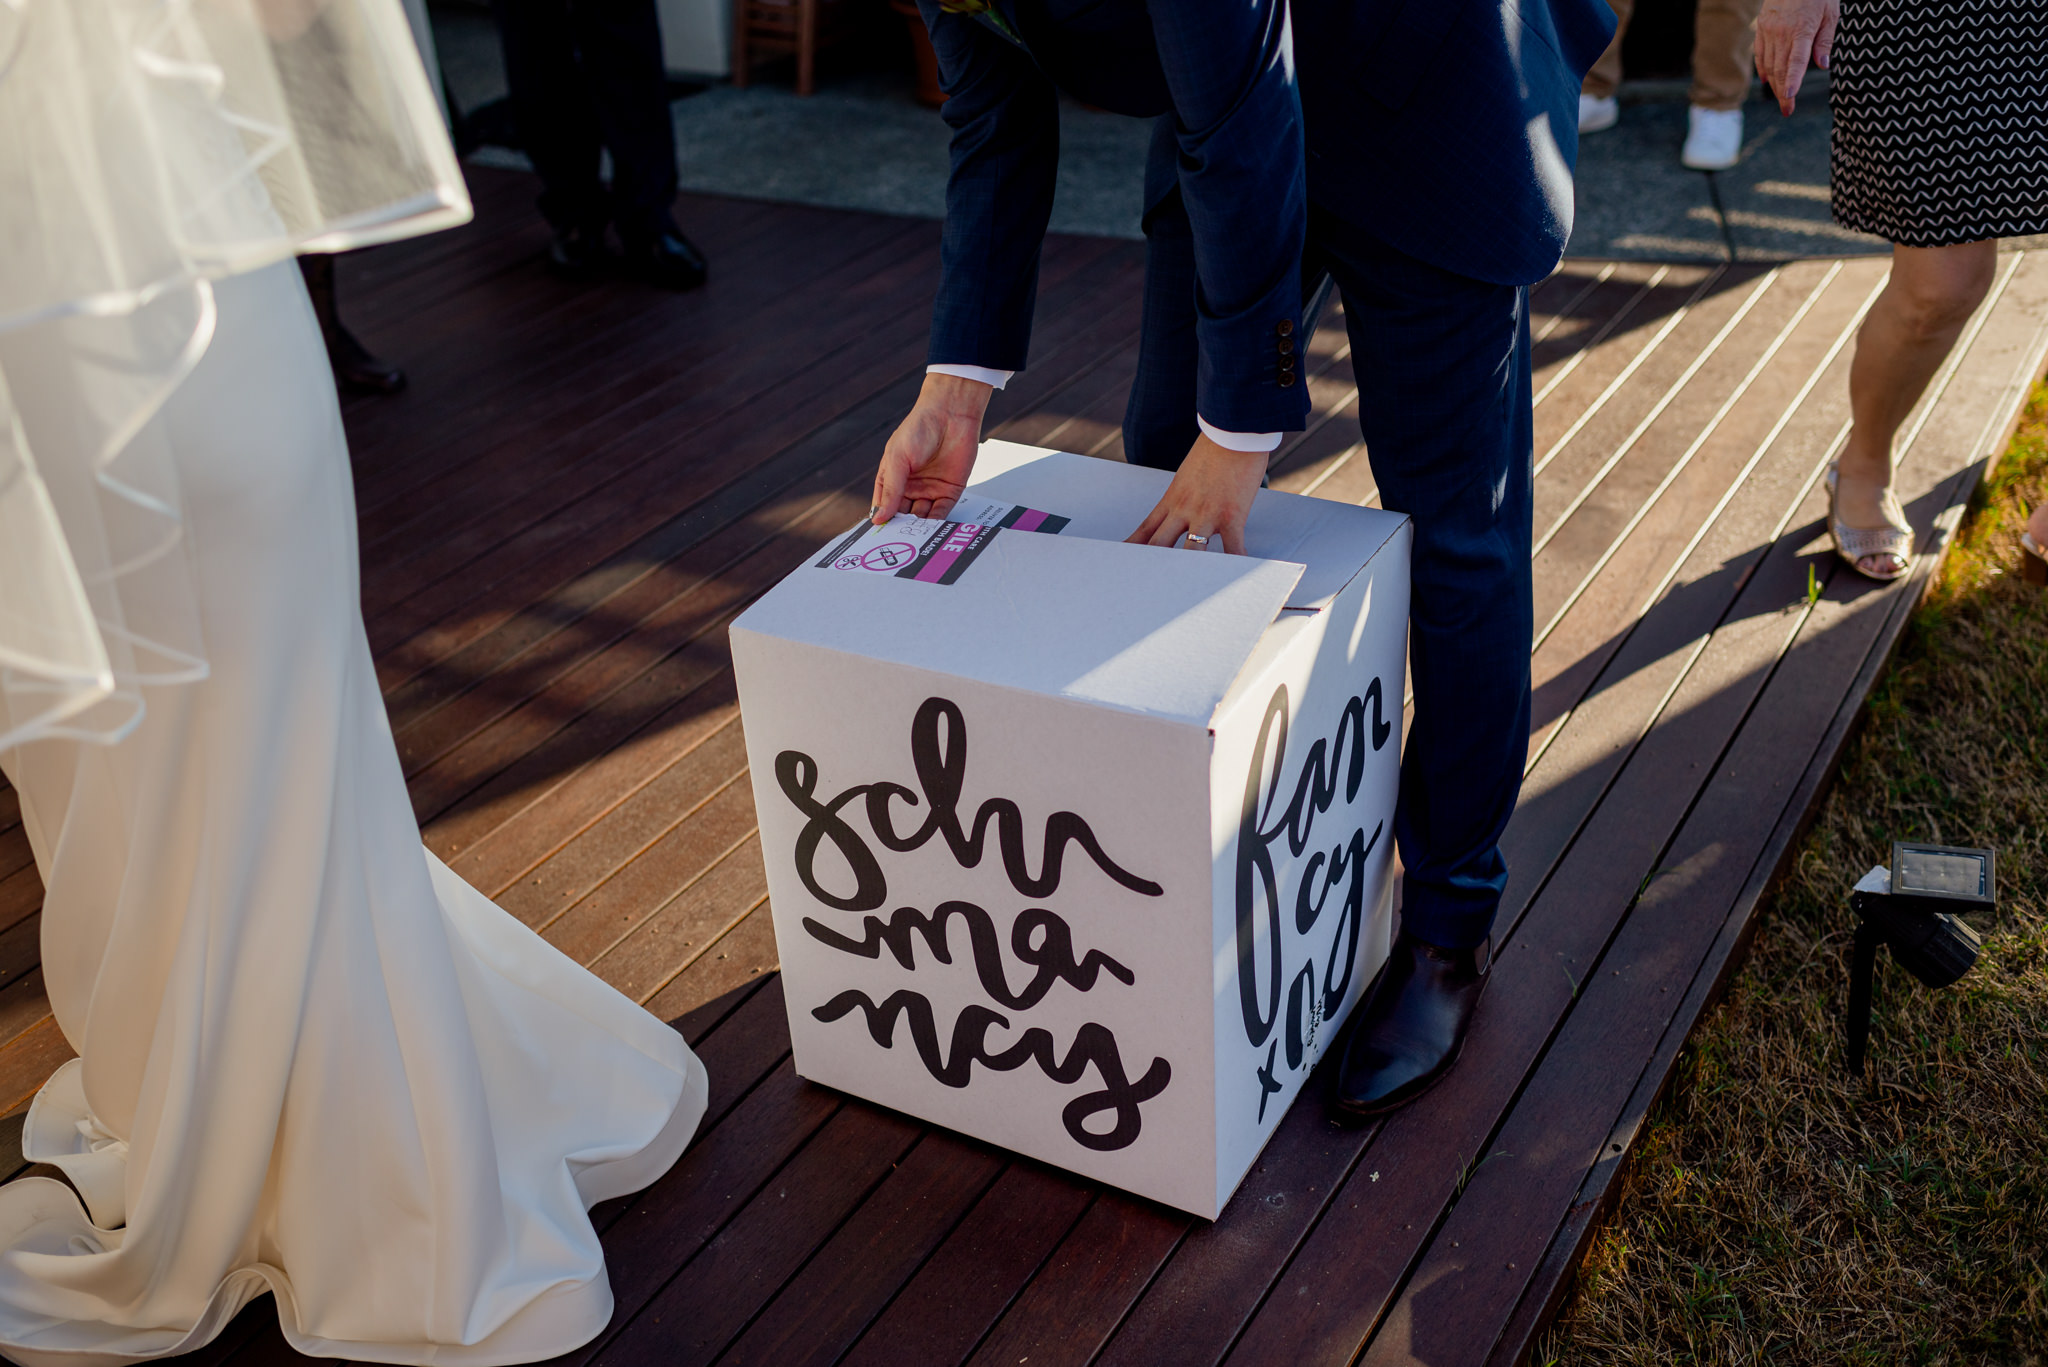 A man opening a large white cardboard box with cursive black text